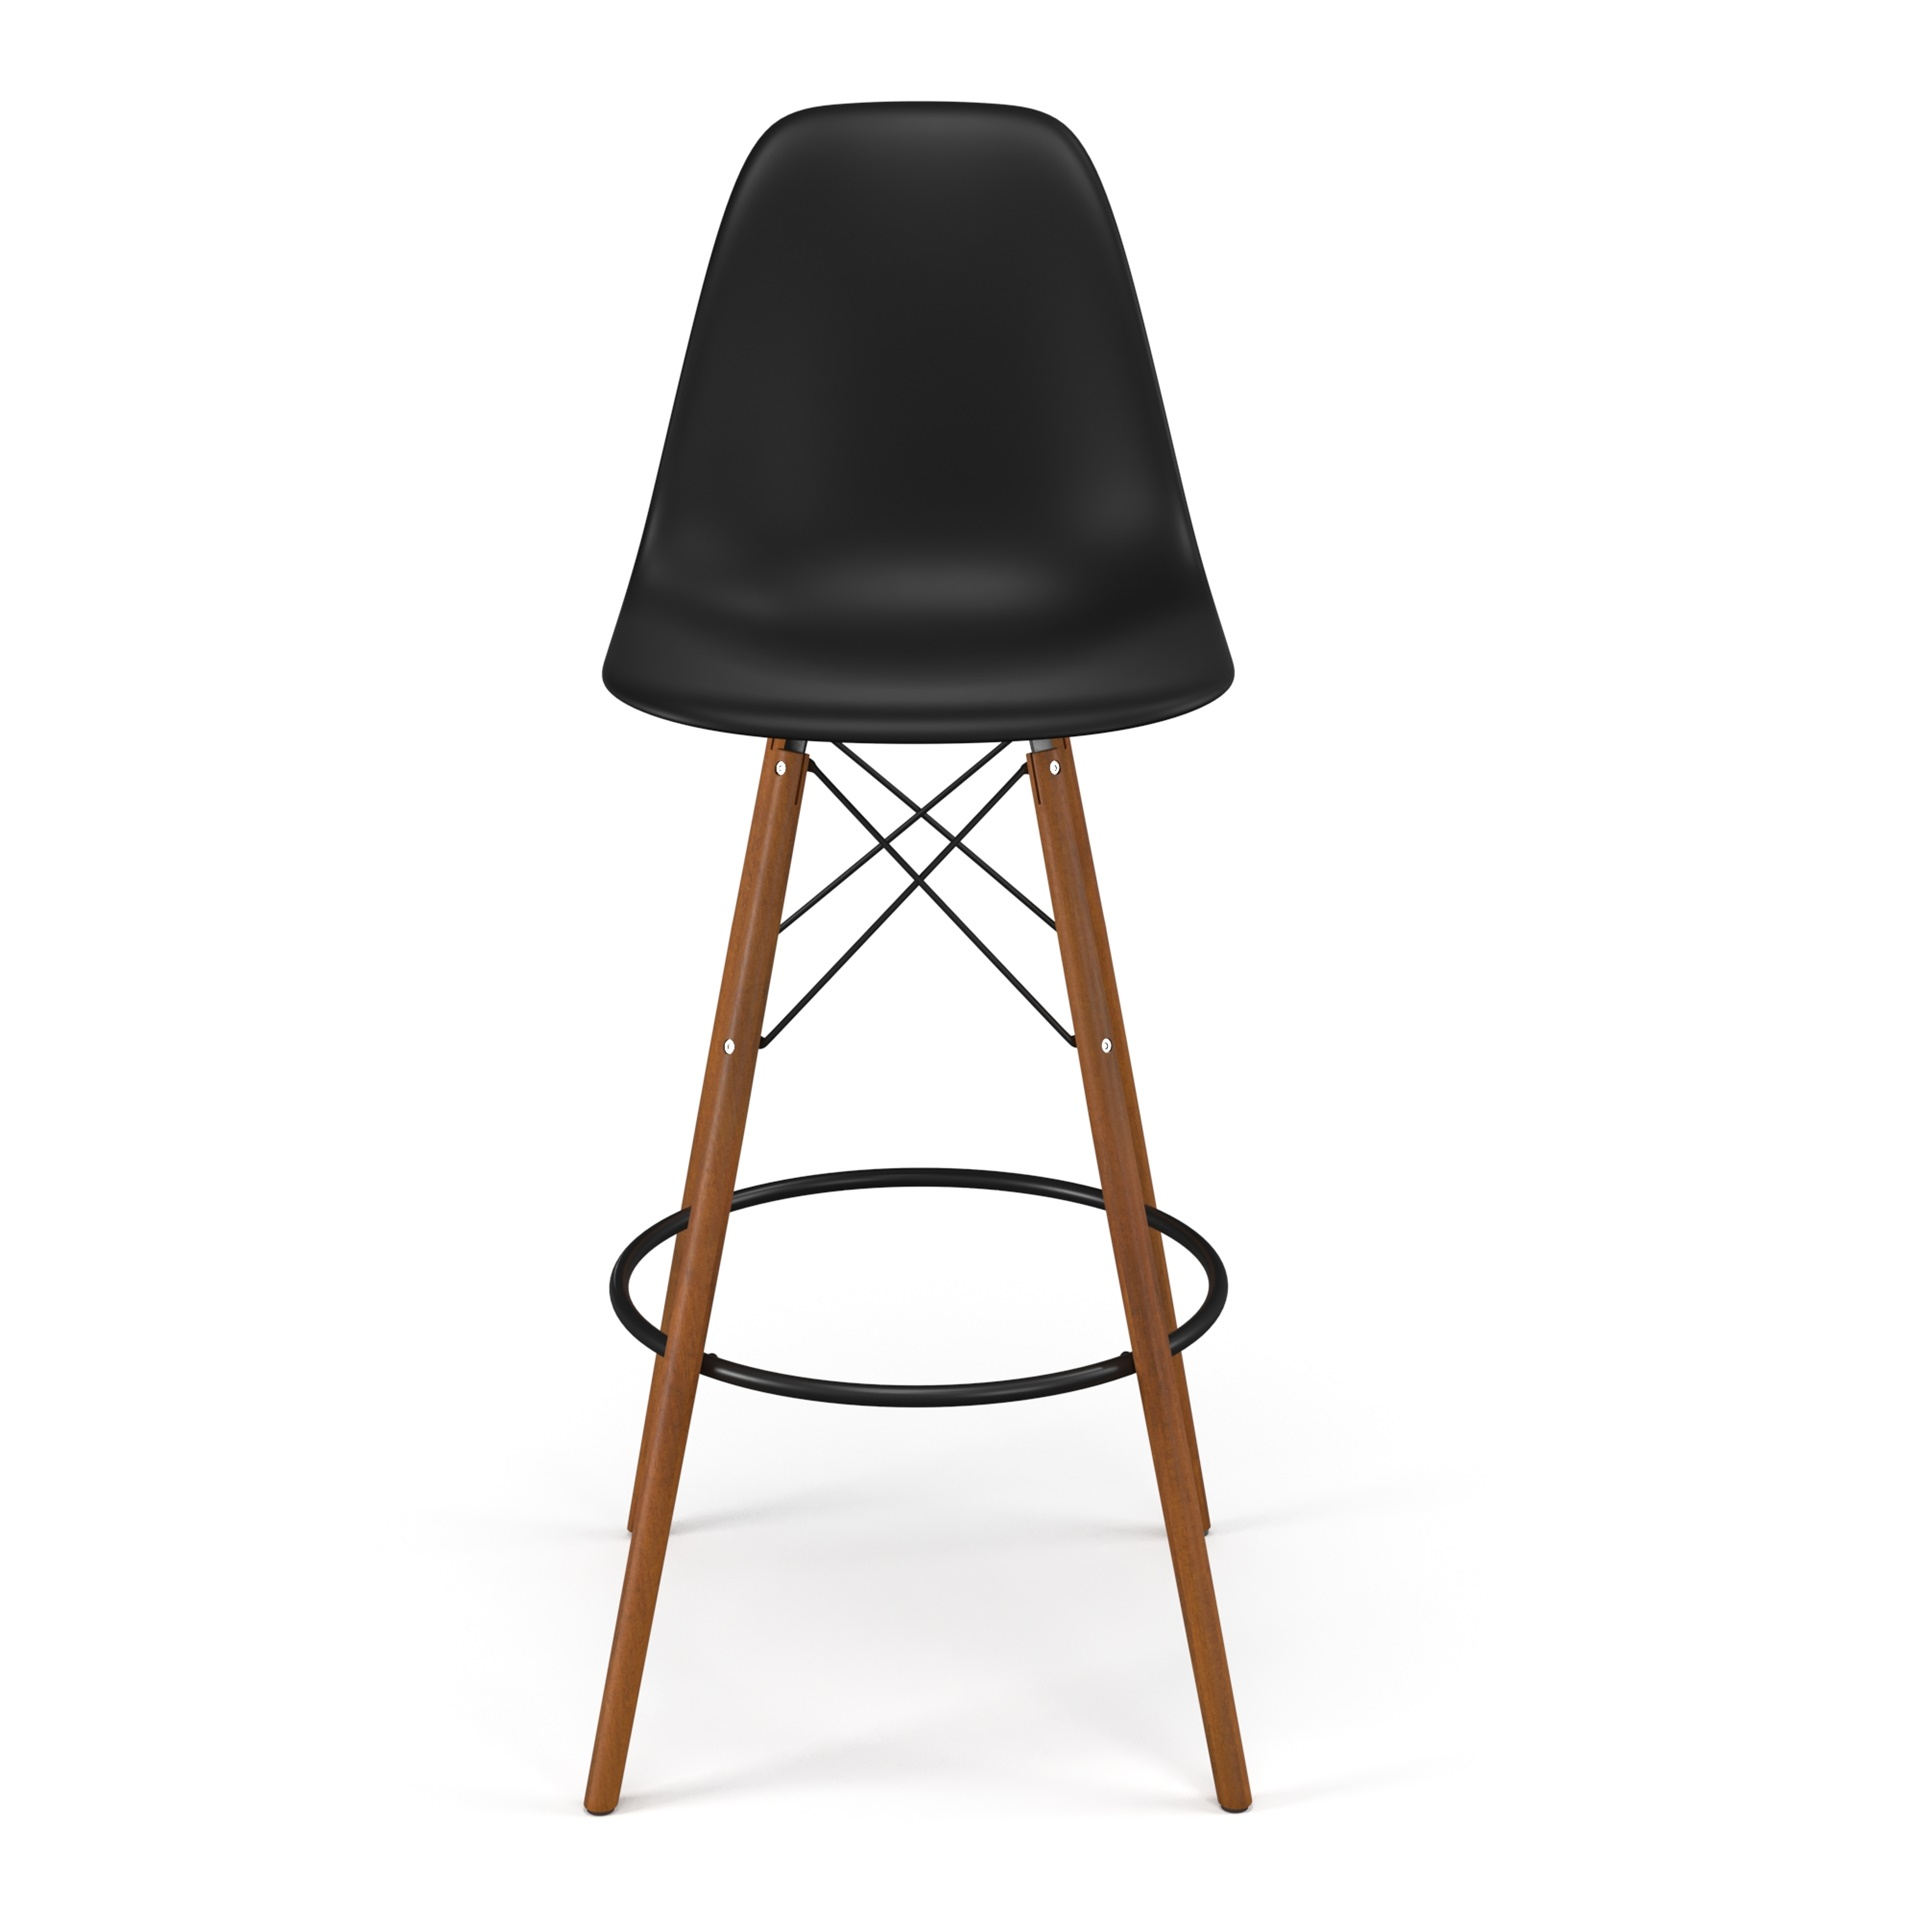 Admirable Molded Plastic Bar Stool With Wood Legs Cjindustries Chair Design For Home Cjindustriesco